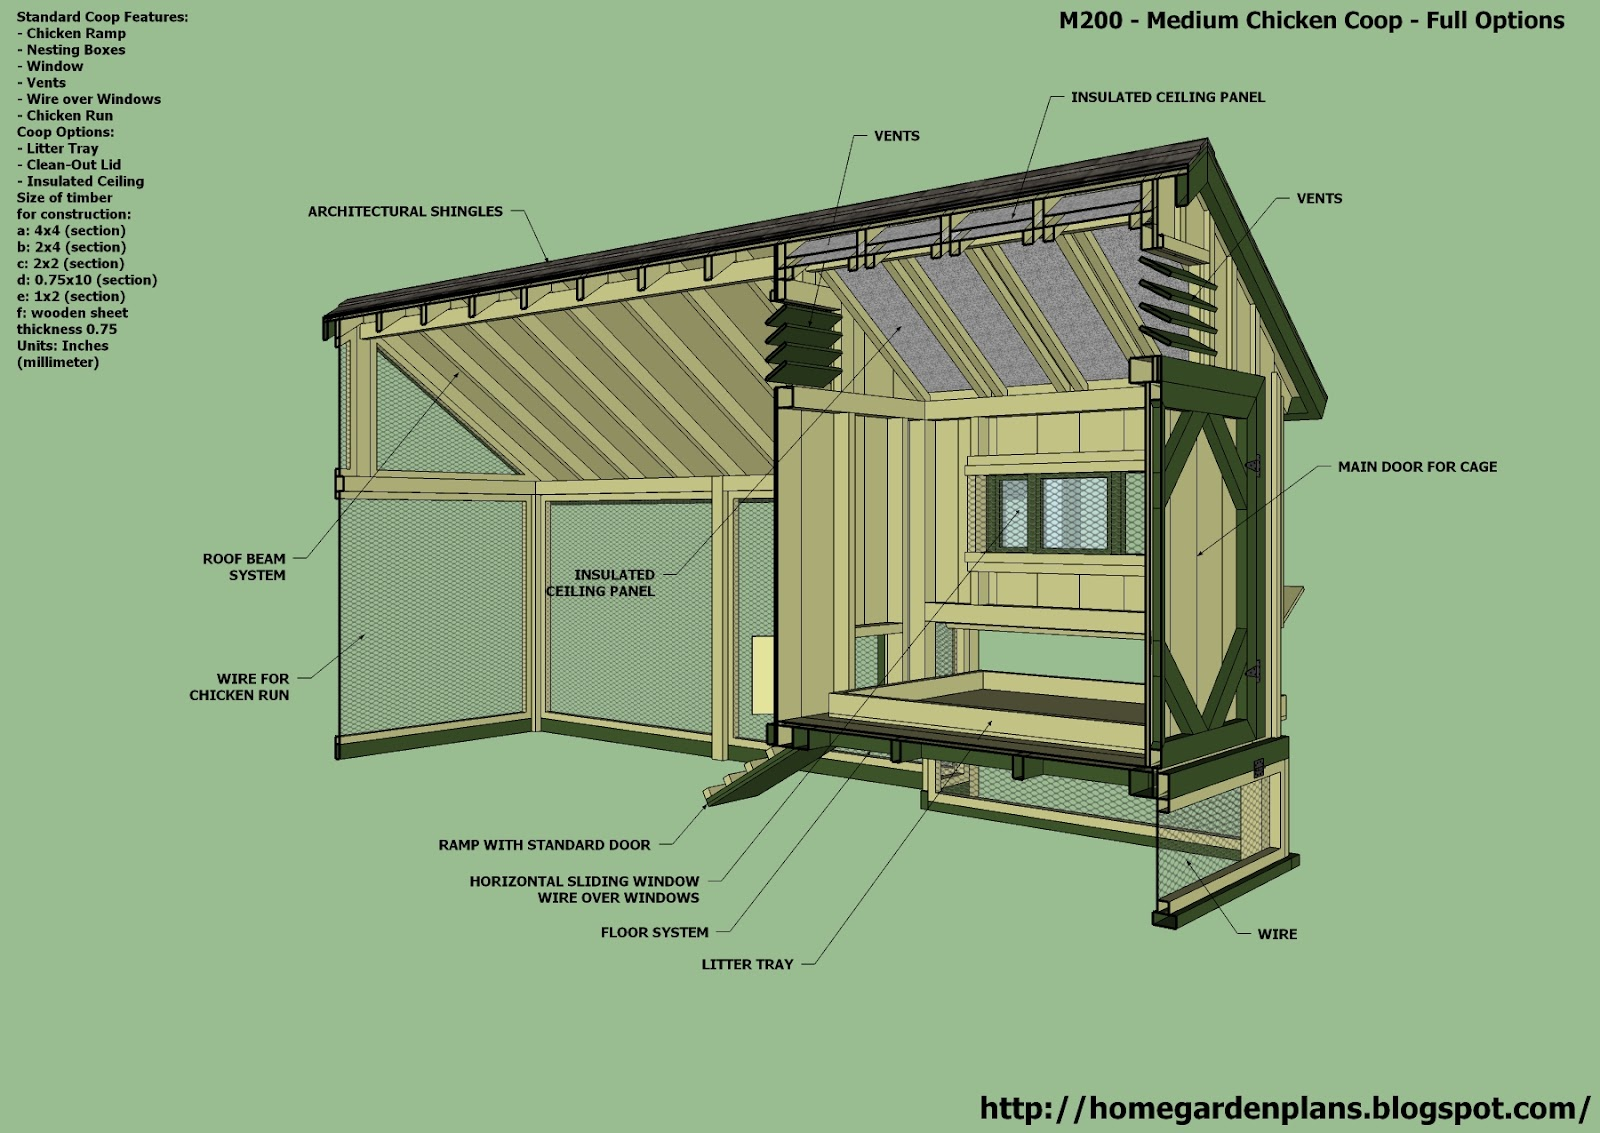 Home garden plans m200 chicken coop plans construction for Poultry house plans for 100 chickens